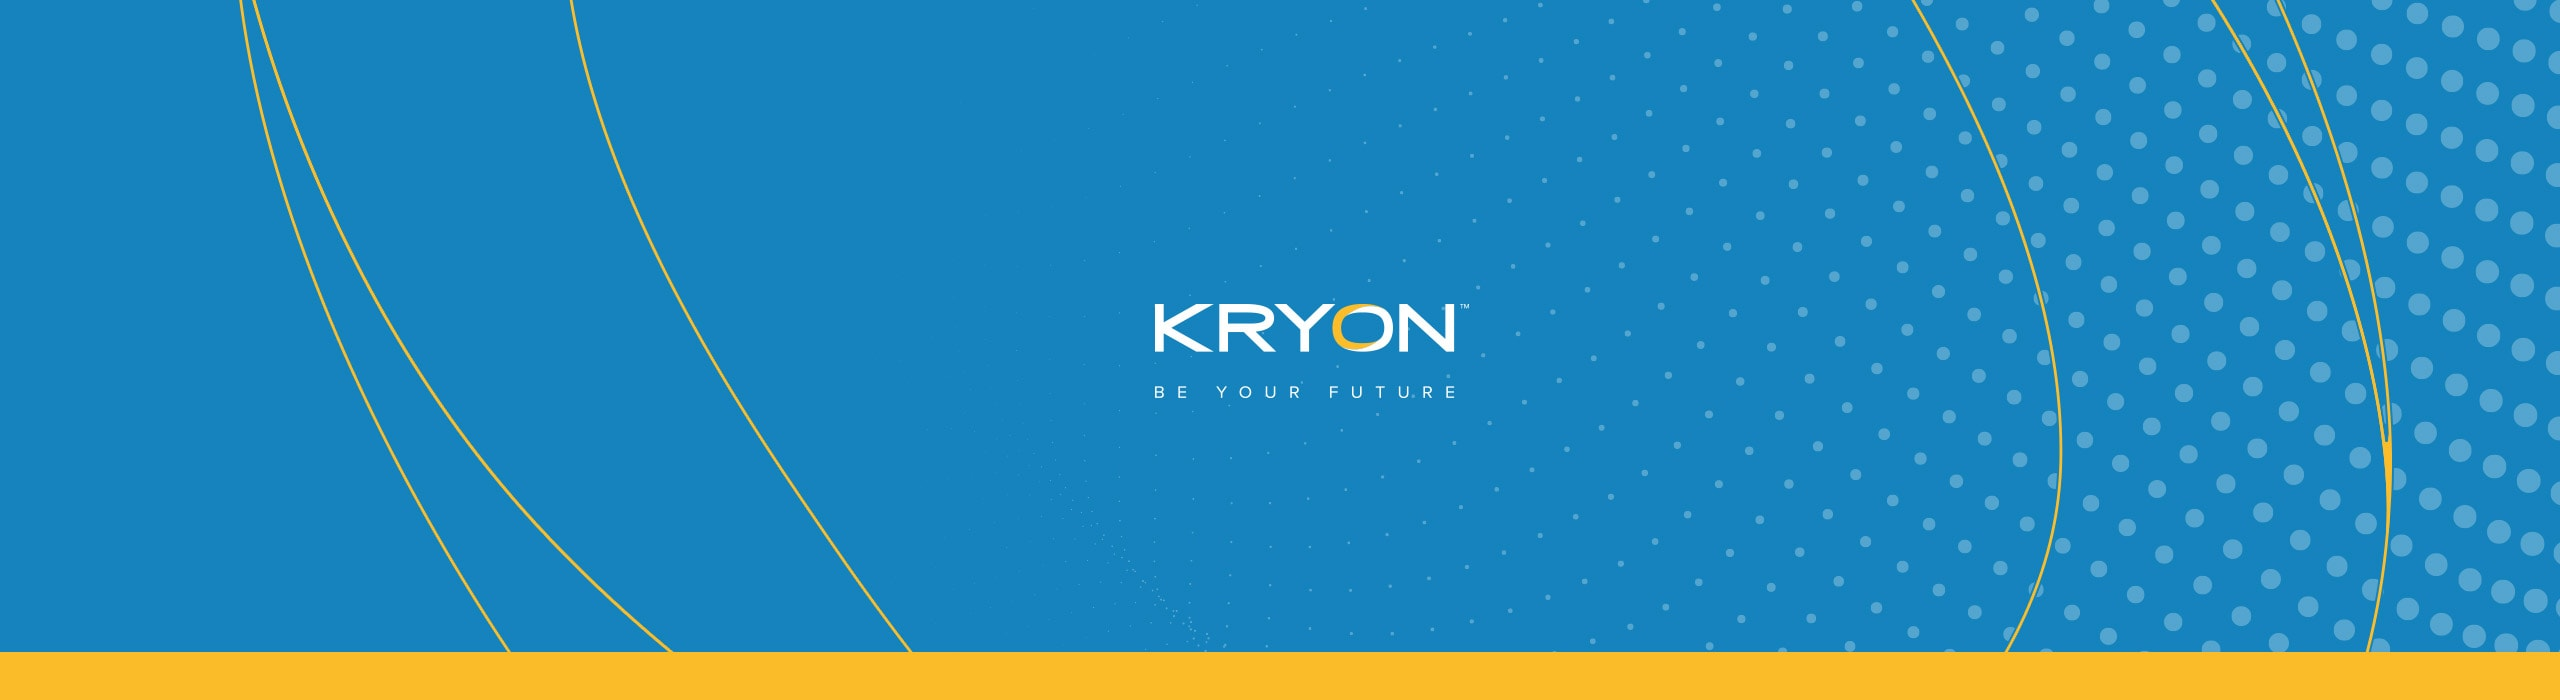 Kryon - 1 - Natie Branding Agency